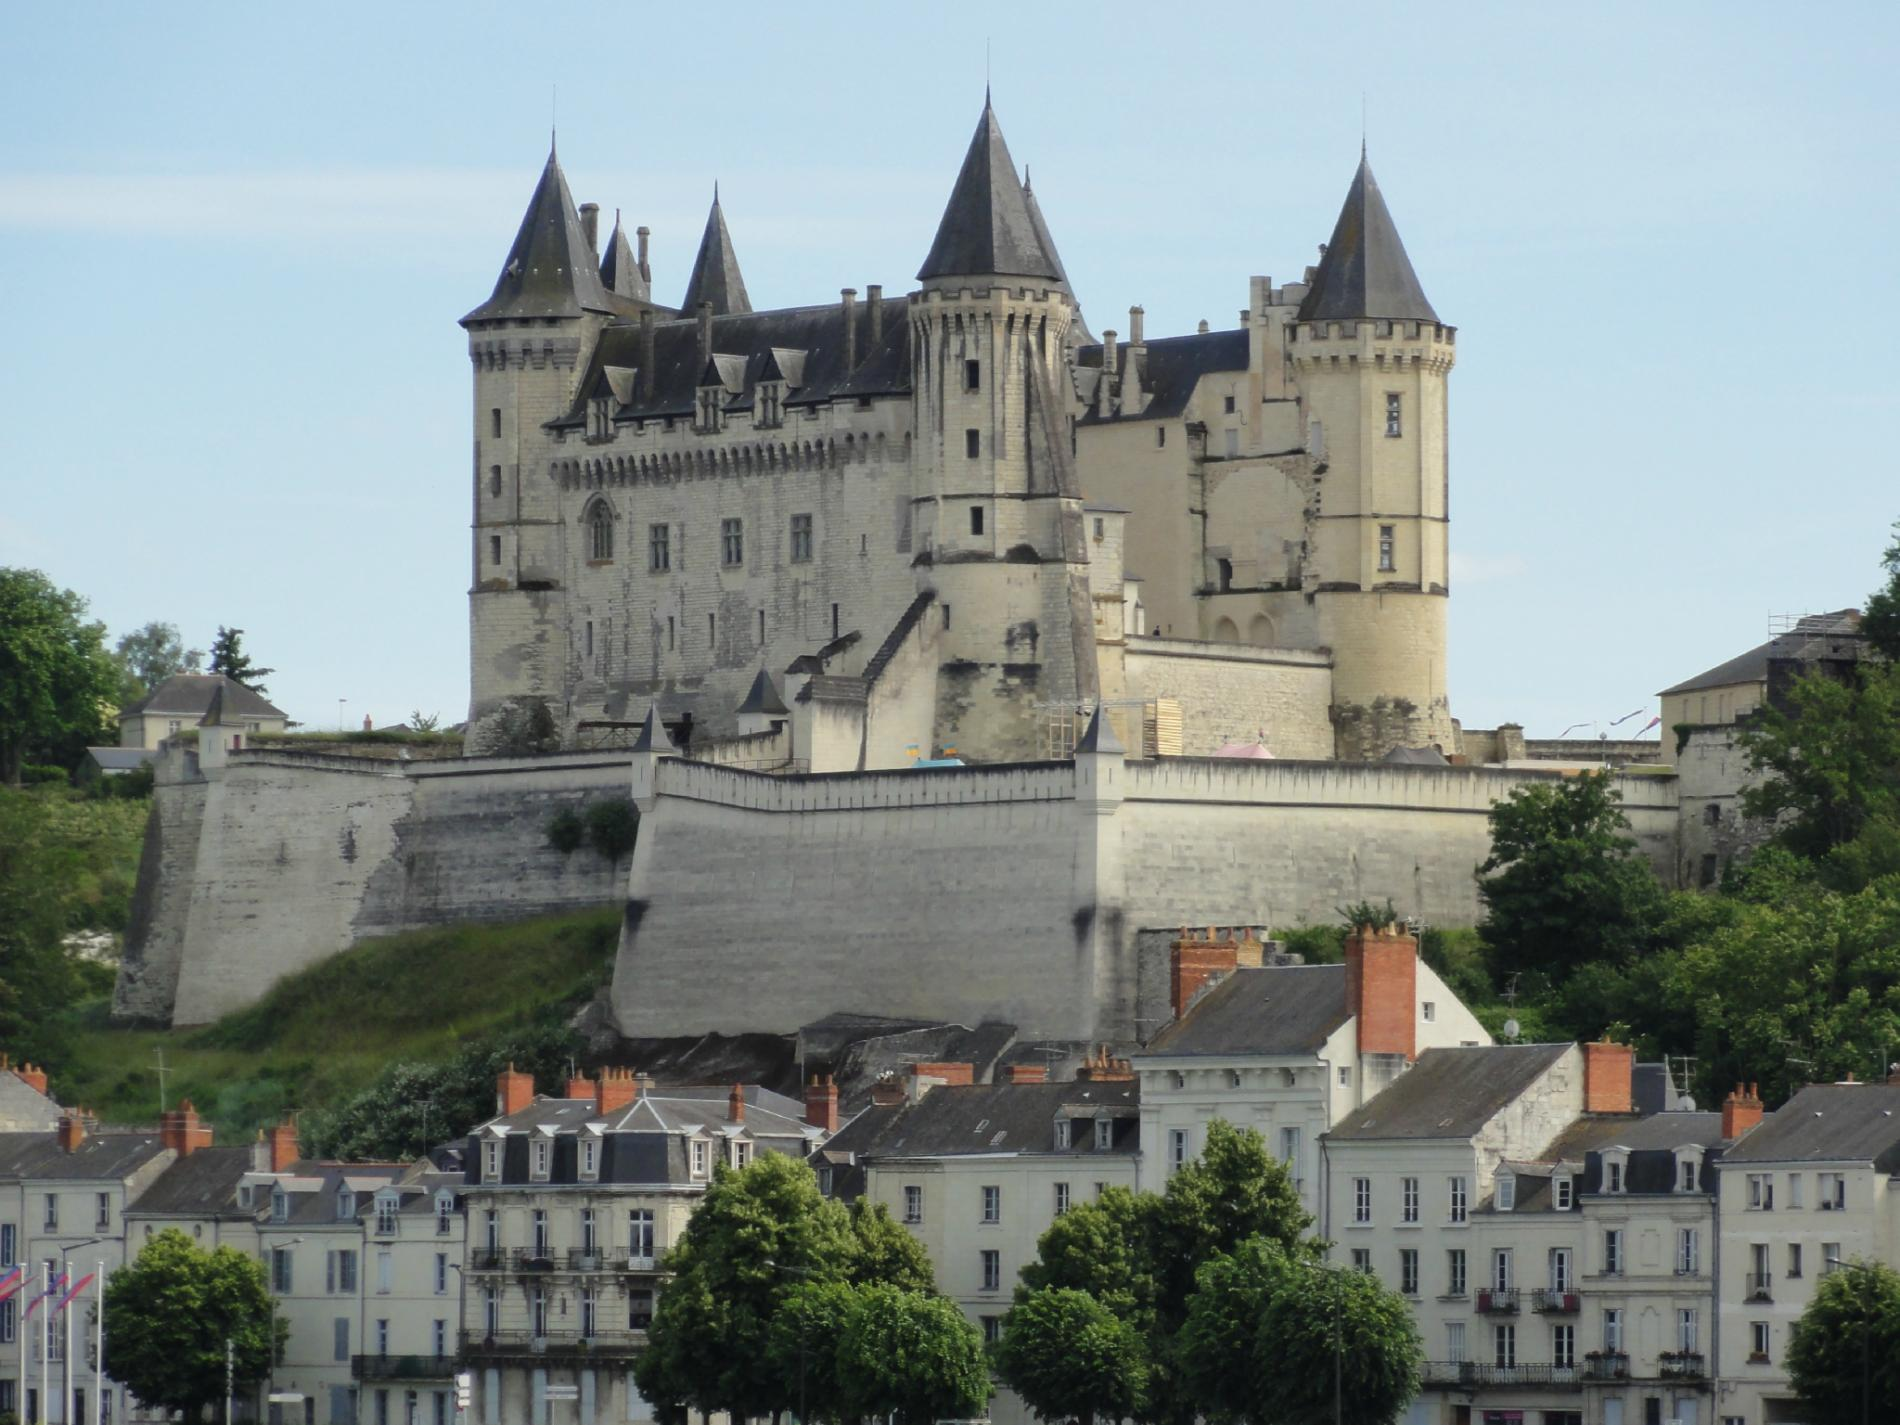 The Château of Saumur